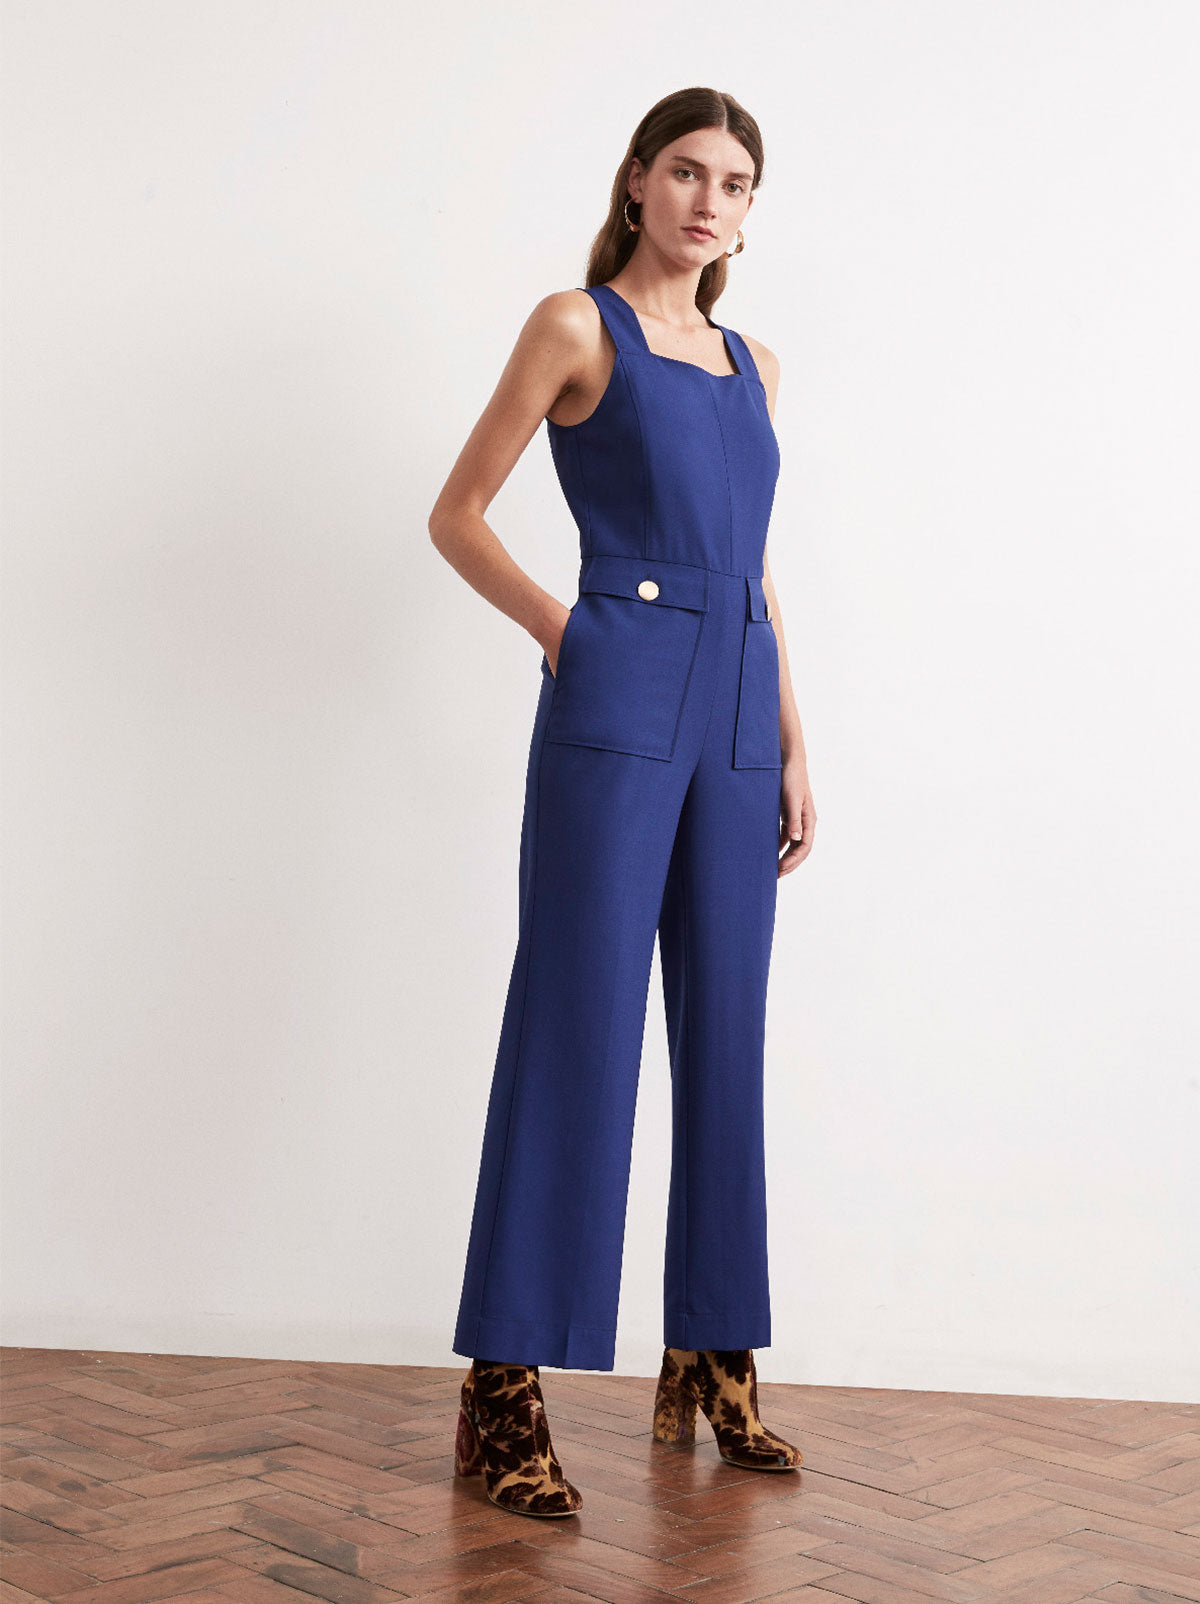 Skye Blue Sleeveless Jumpsuit by KITRI Studio